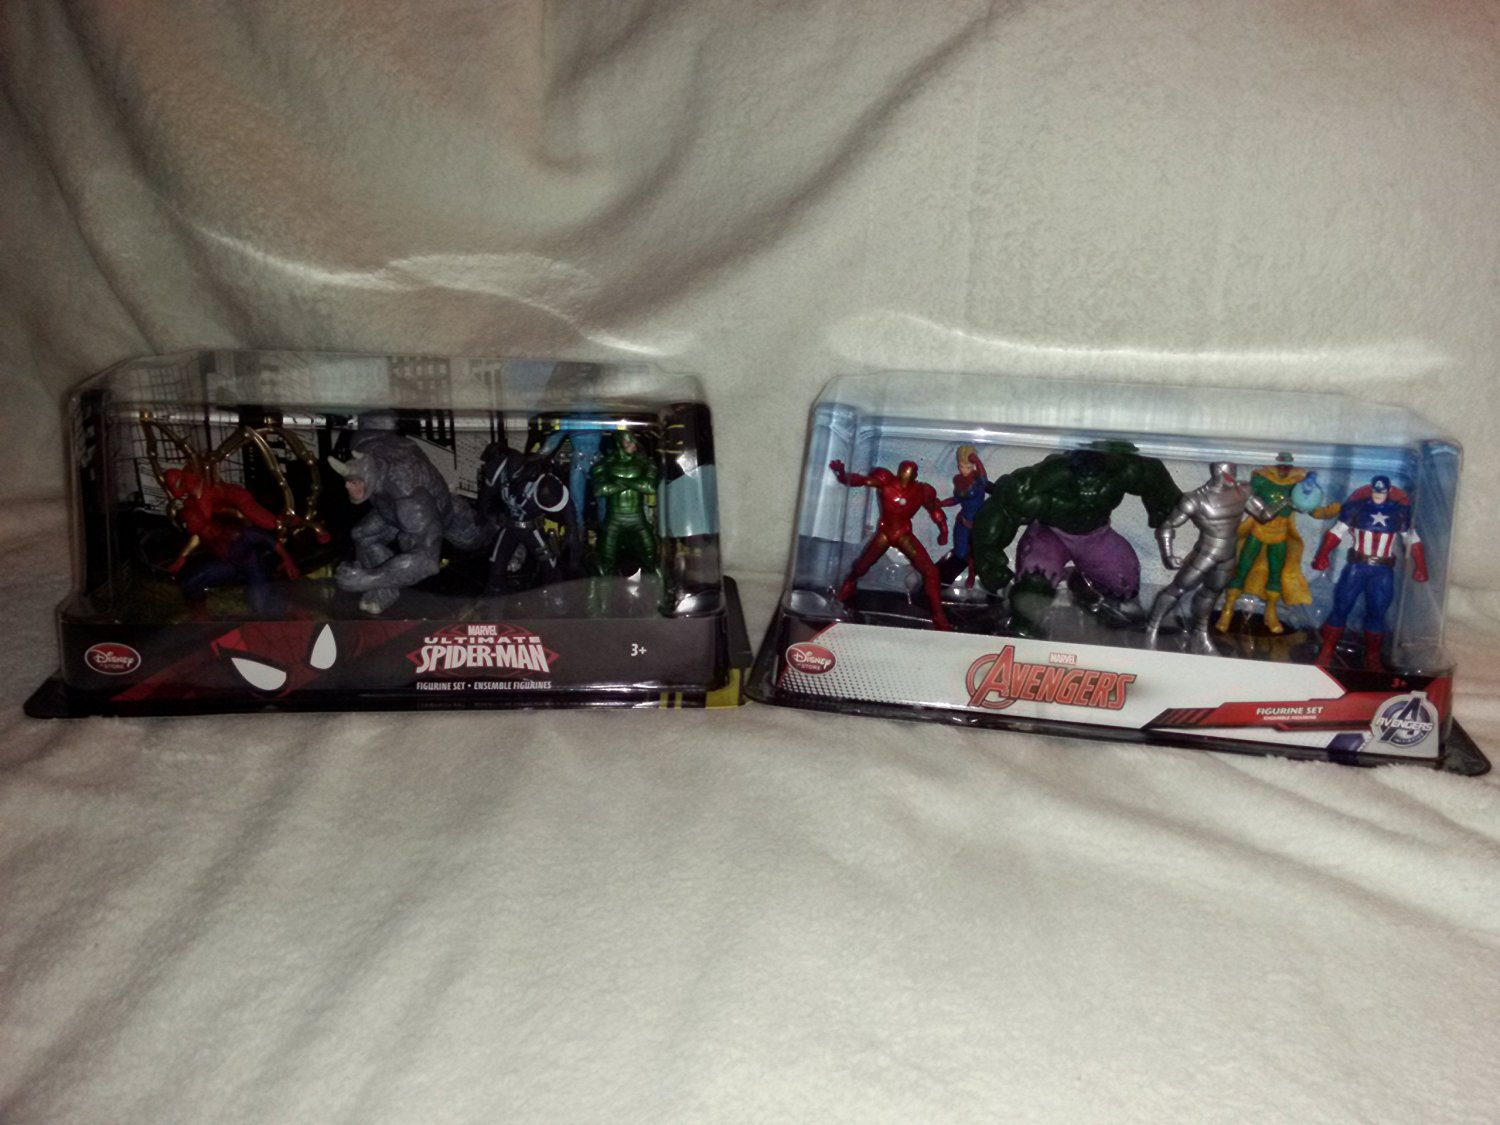 New In Box Disney Store Figurine Sets:Marvel Avengers (6 Figurines) & Marvel Ultimate Spider-Man (6 Figurines)